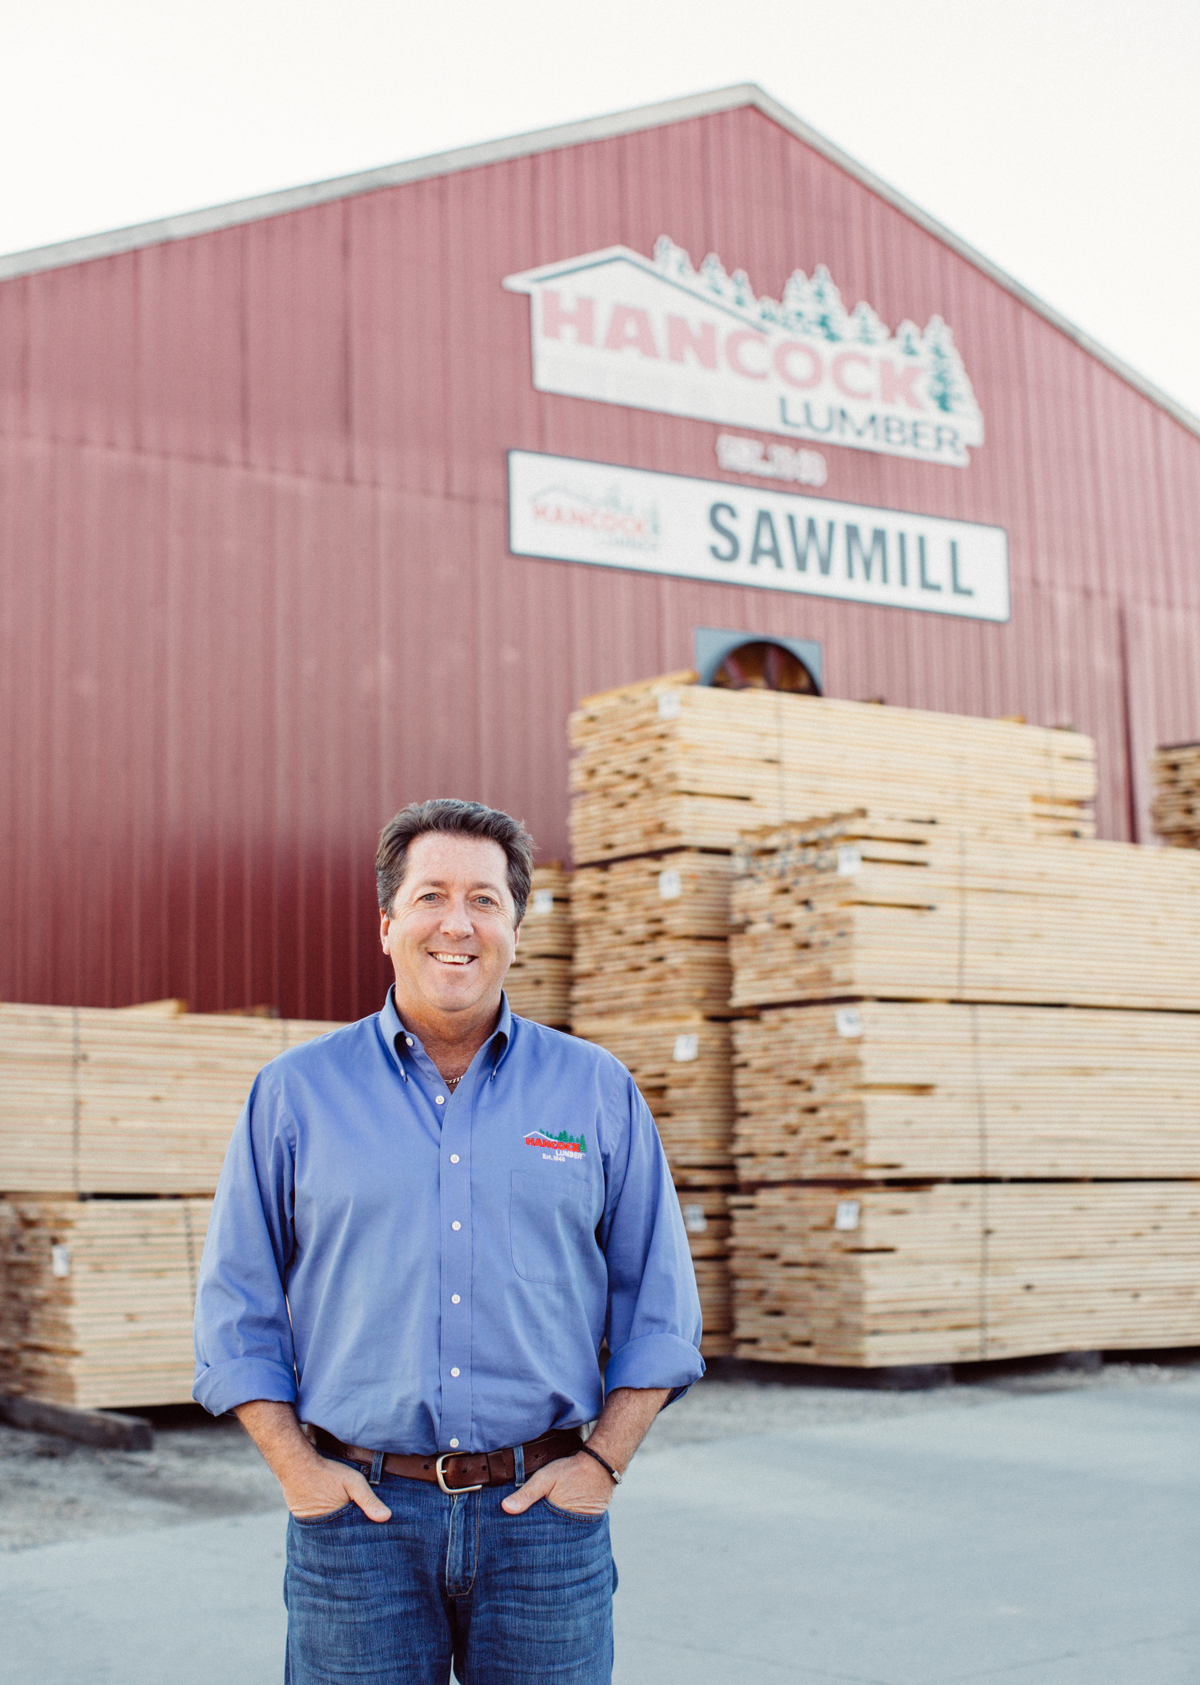 Kevin Hancock, CEO of Hancock Lumber. Photo credit: Jessica Weiser